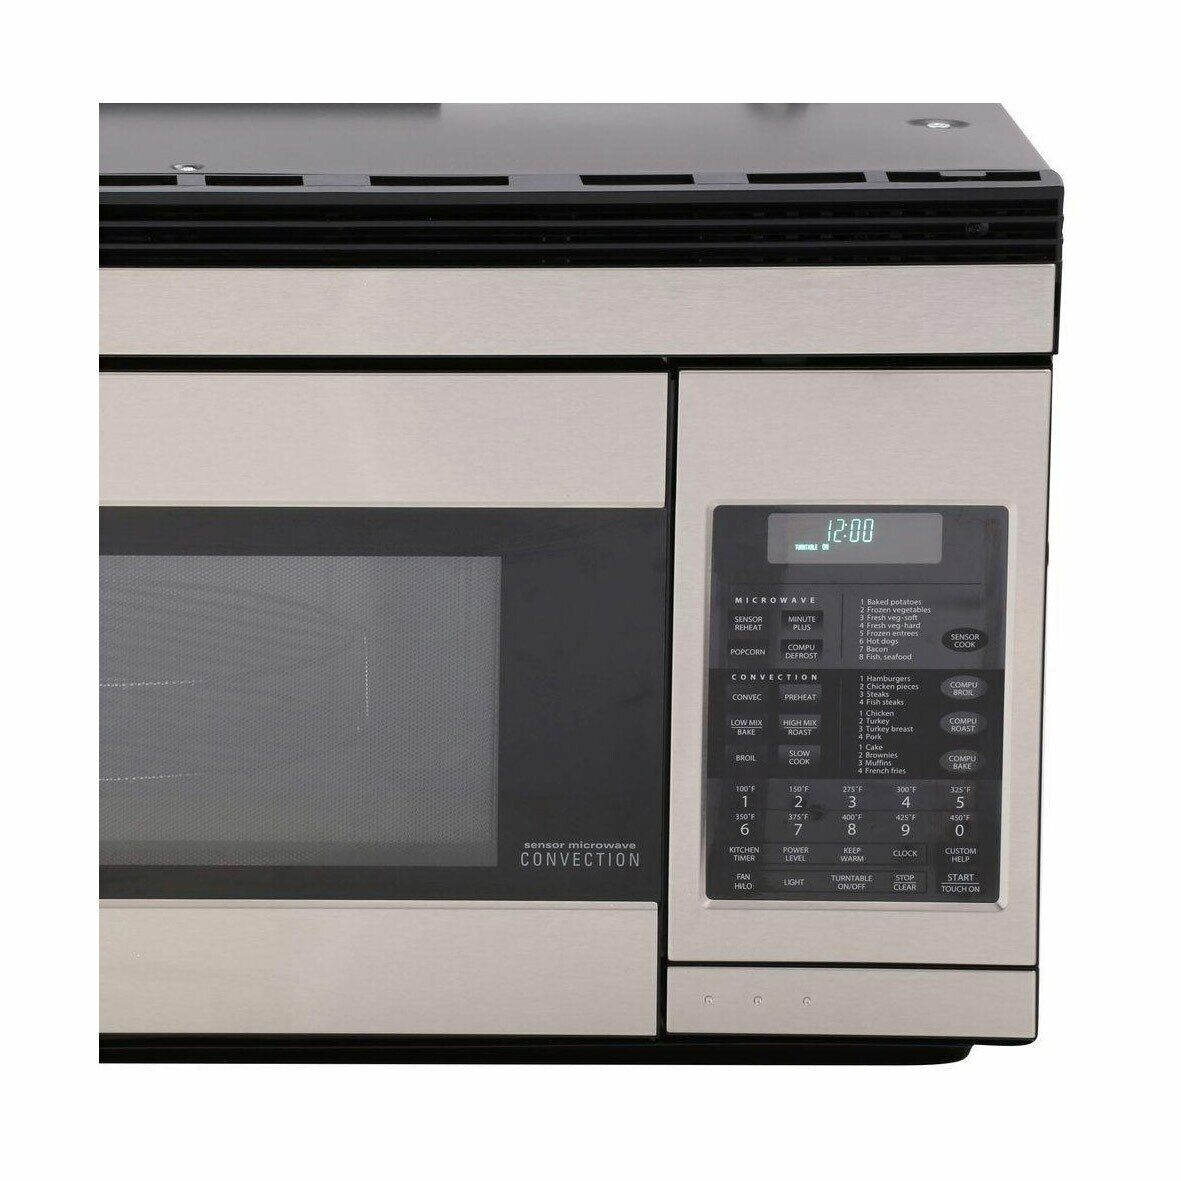 1.1 cu. ft. 850W Sharp Stainless Steel Over-the-Range Convection Microwave (R1874TY) – control panel